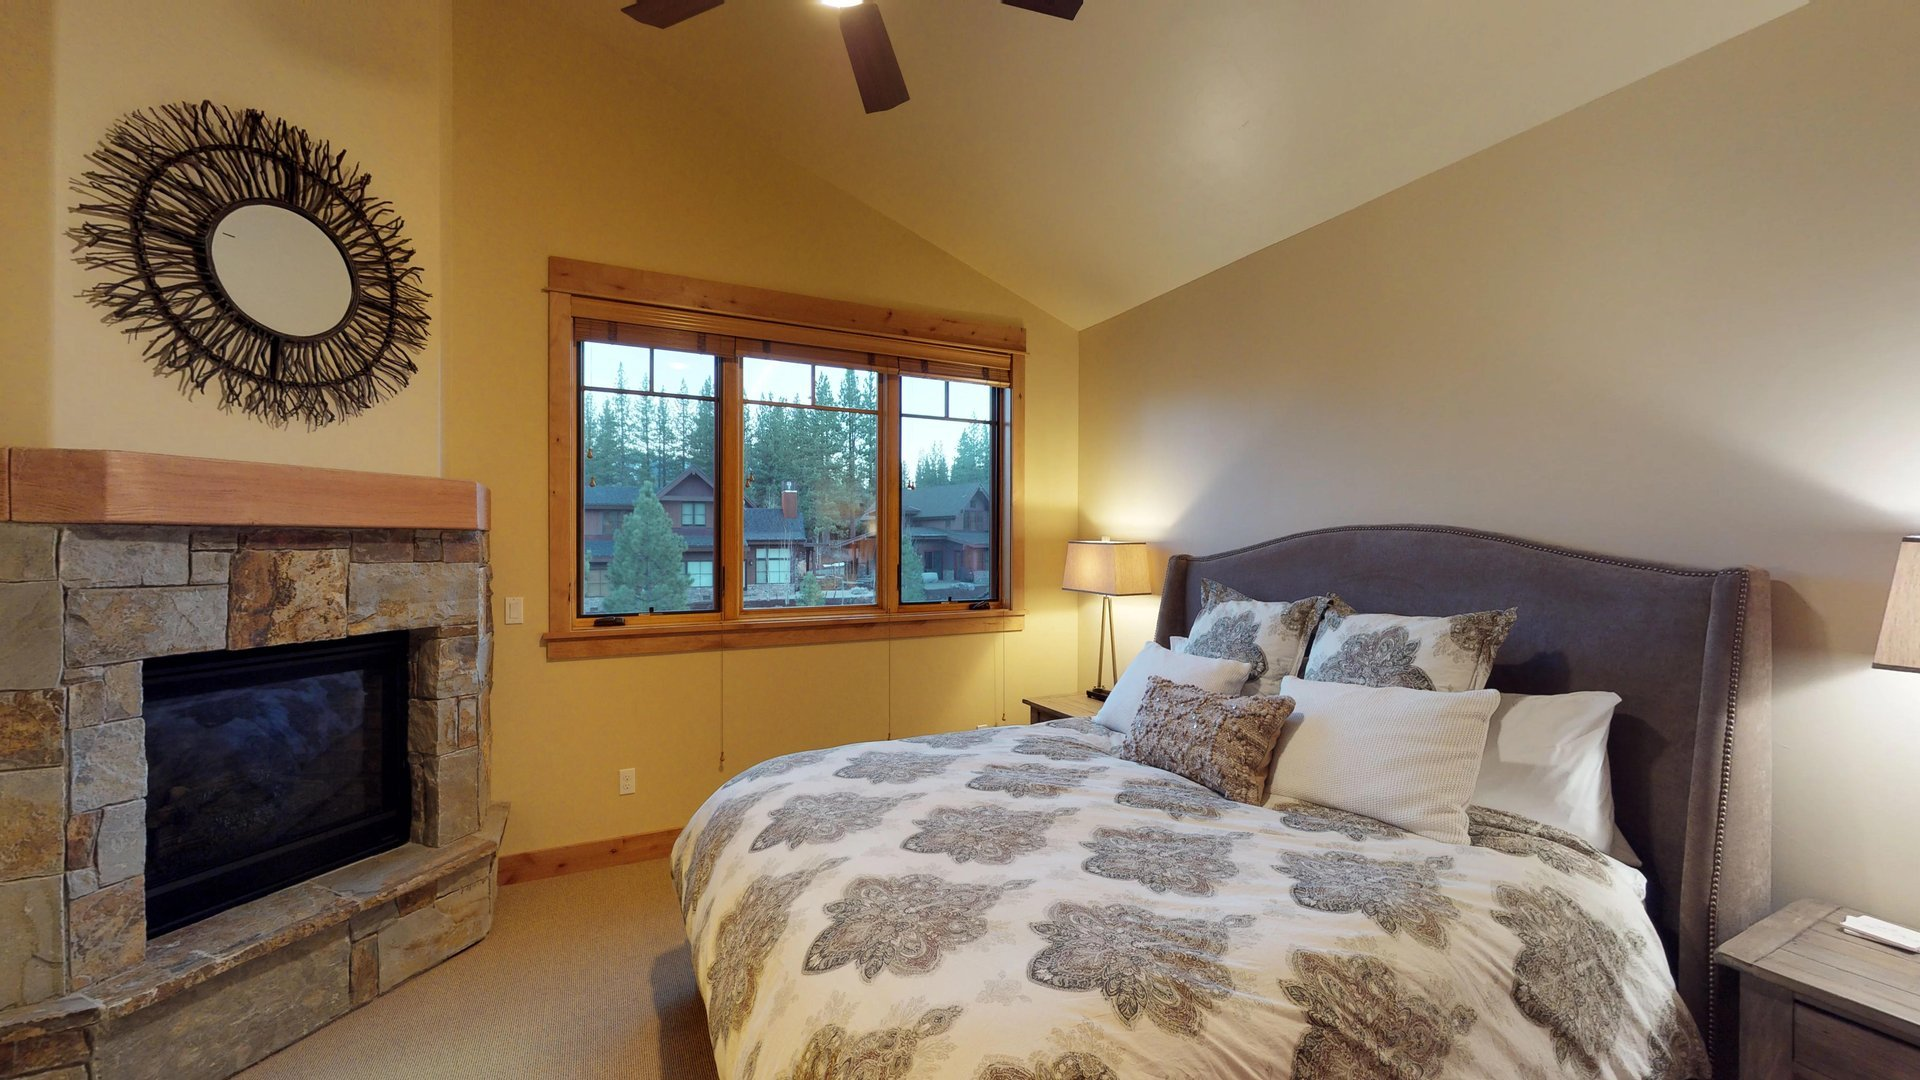 Large Bedroom Includes Two Side Tables, Fireplace, and Art on Wall.